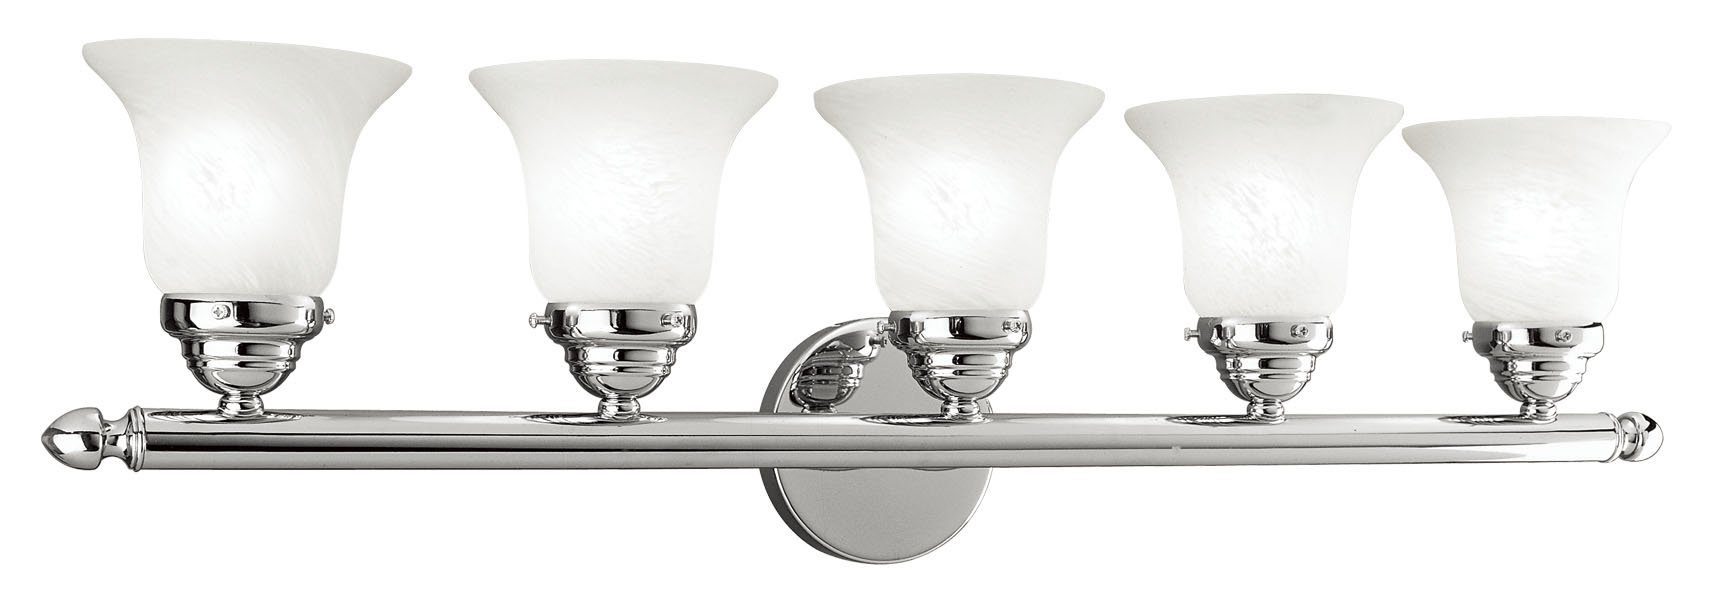 Livex Lighting 1065-05 Neptune 5-Light Bath Light, Chrome